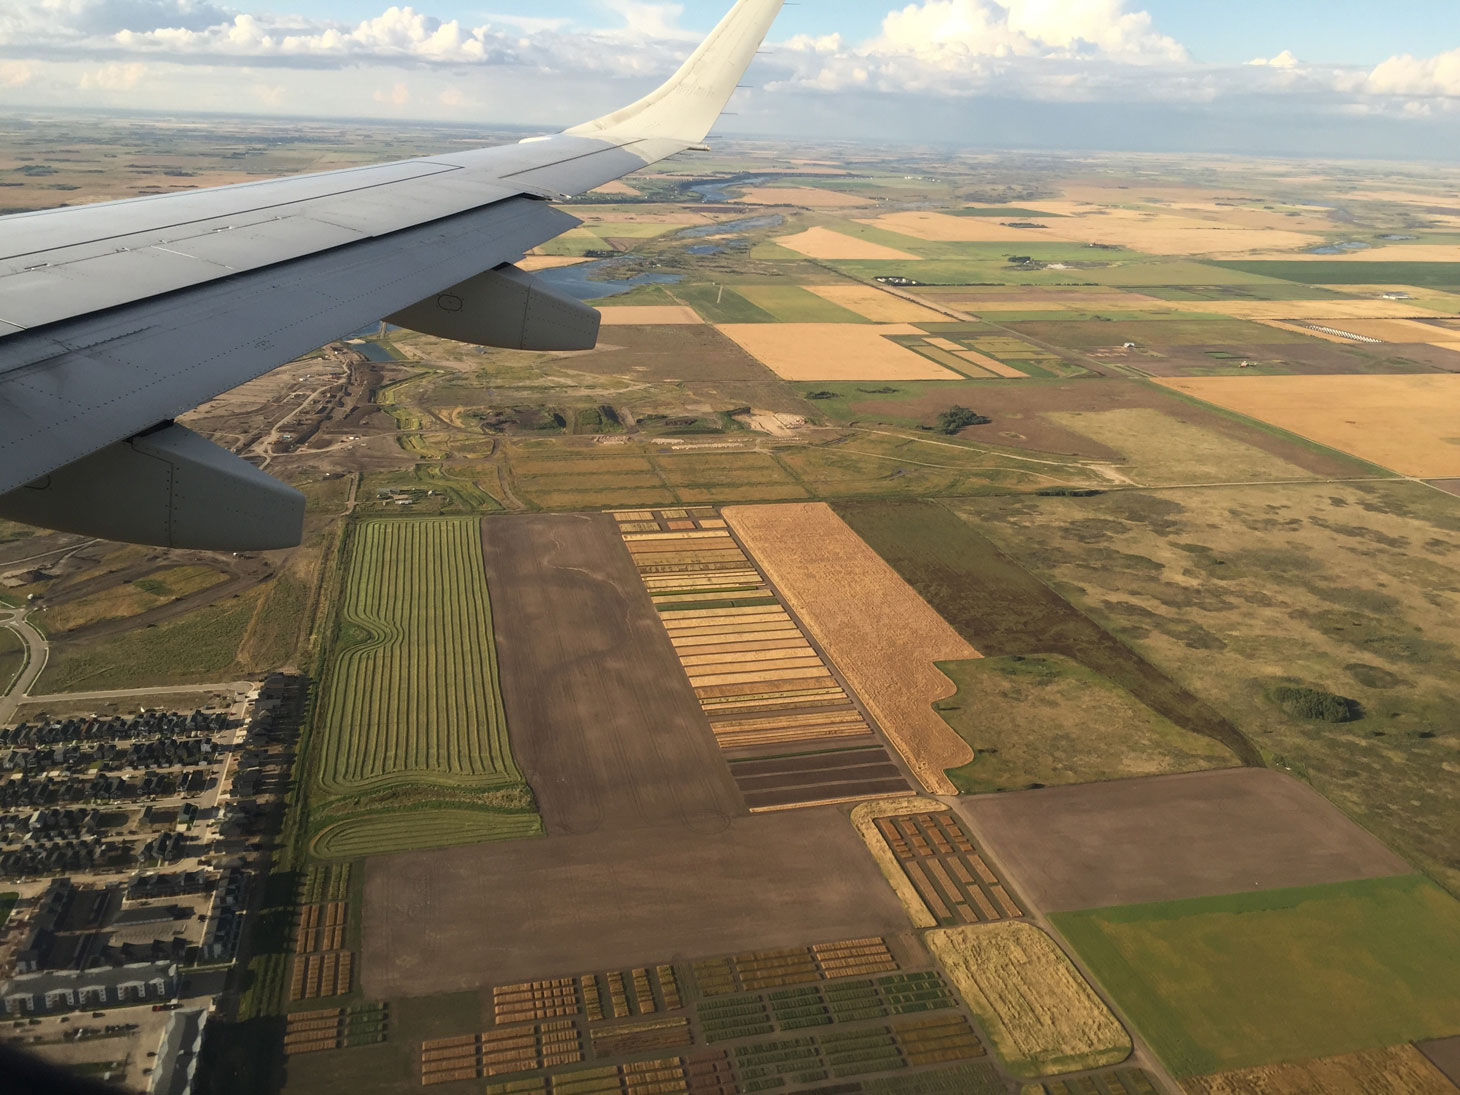 View of the prairies from an airplane